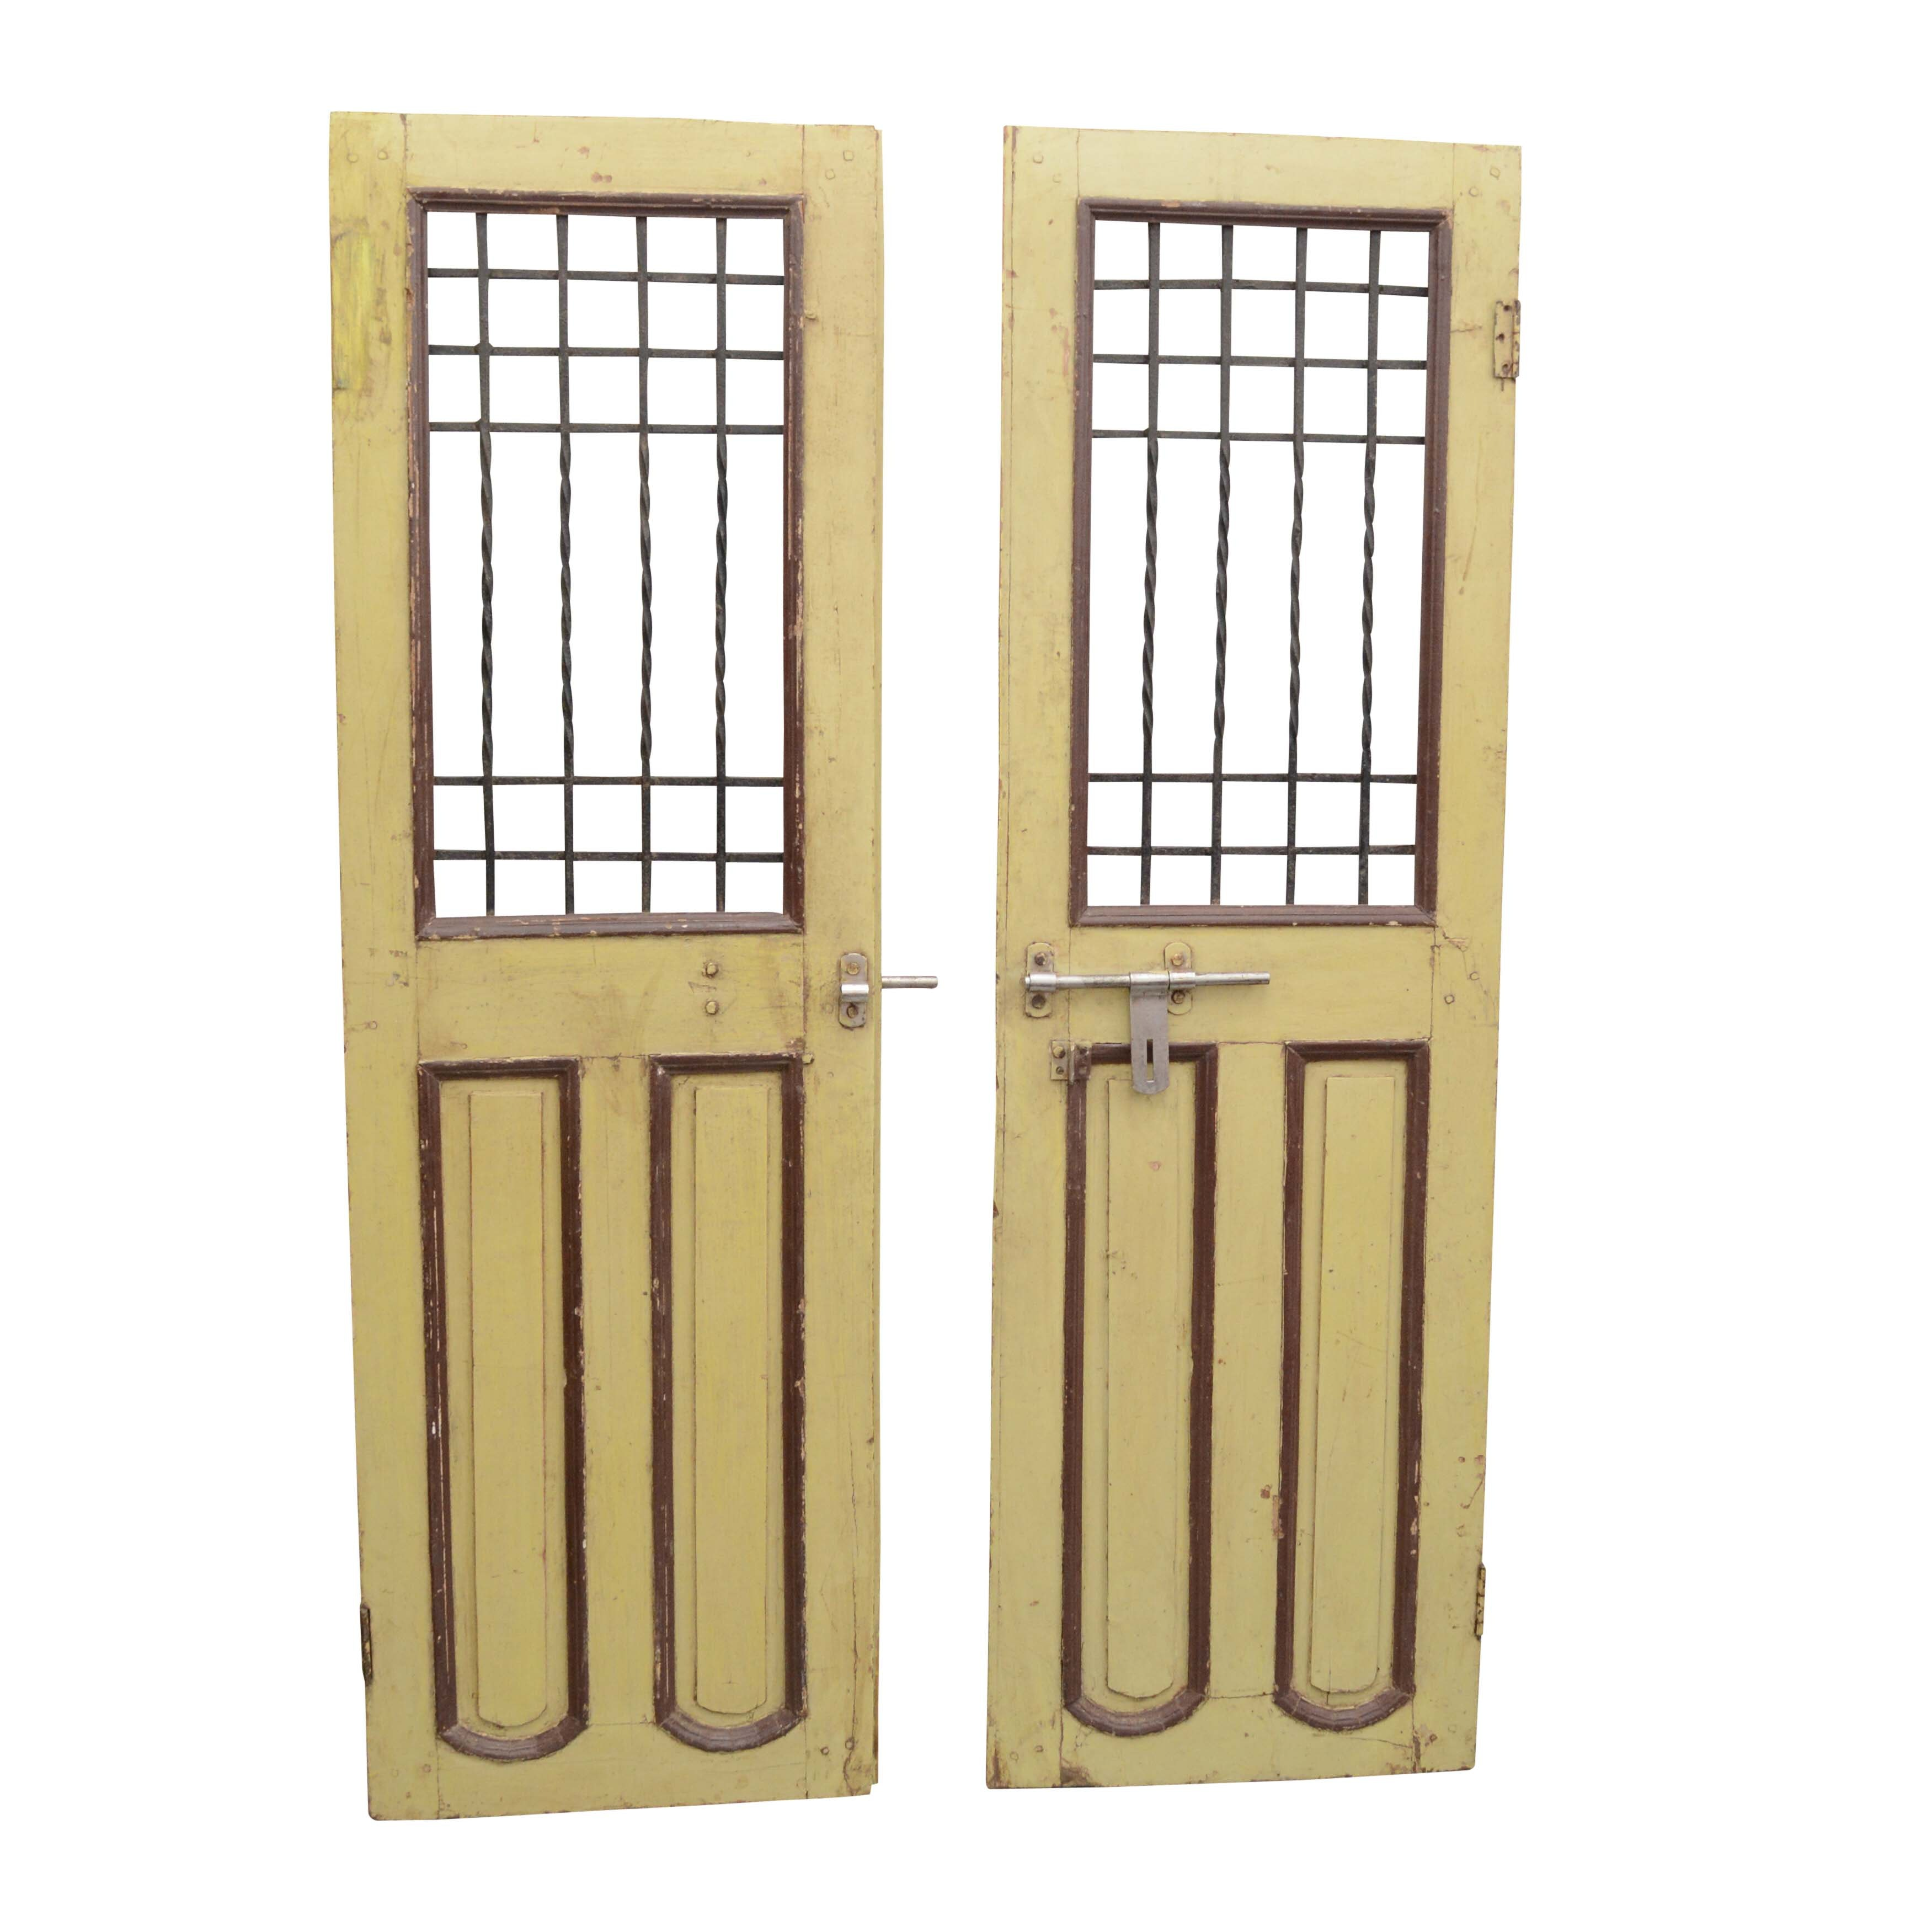 Vintage Wood and Wrought Iron Doors